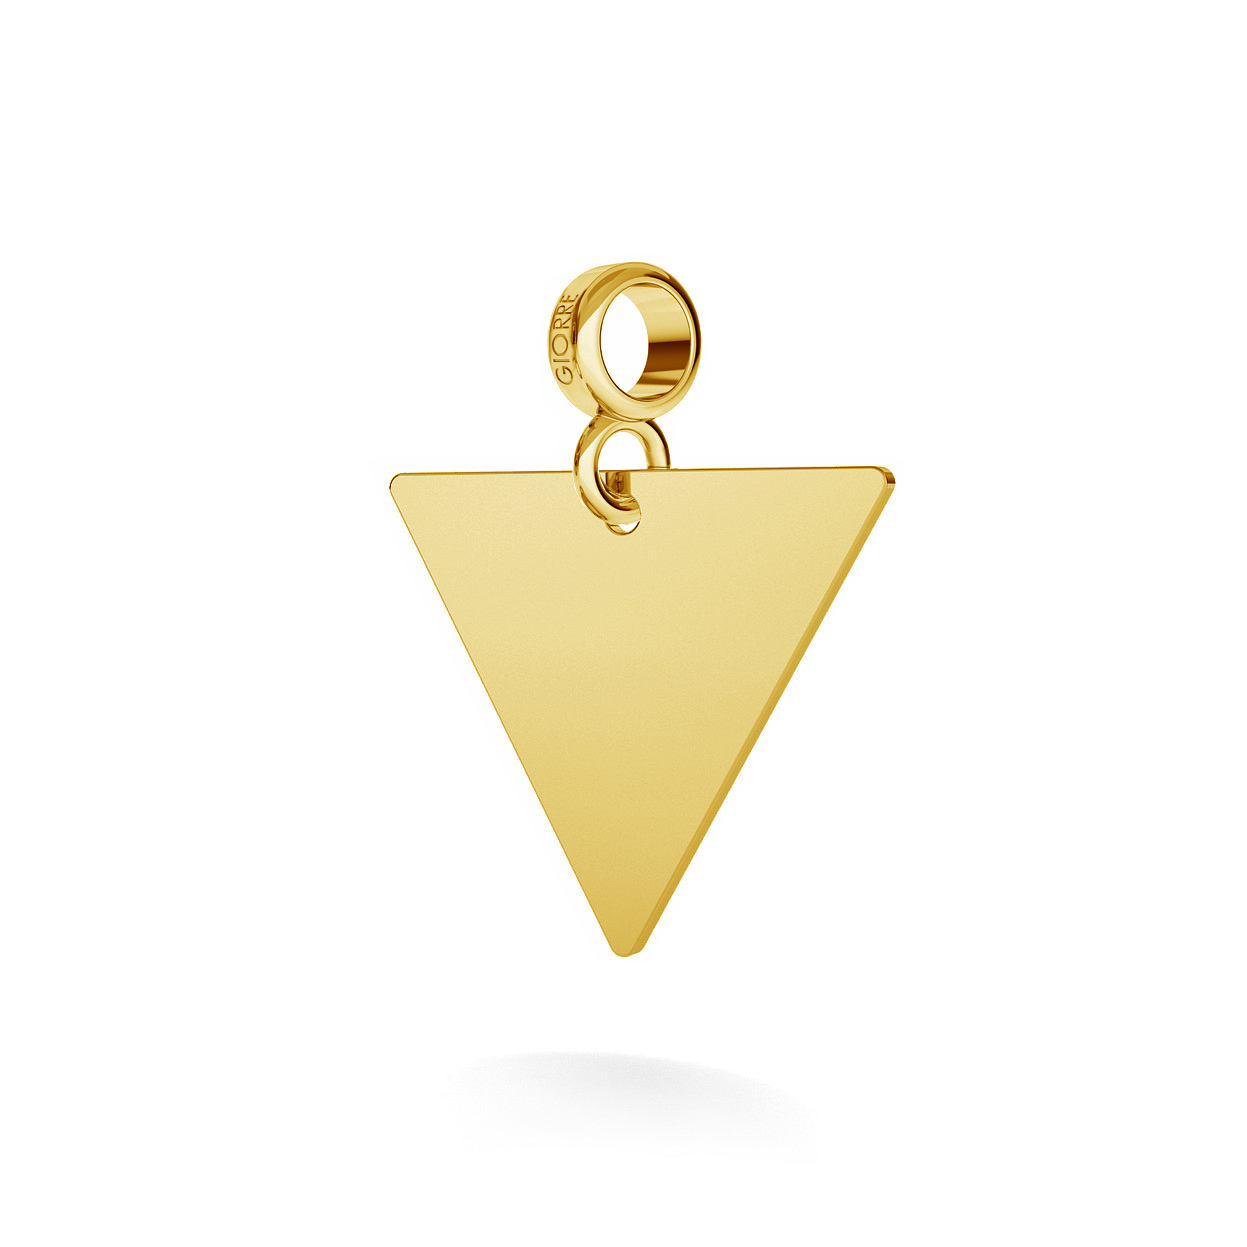 CHARM WITH ENGRAVE, TRIANGLE, SILVER 925,  RHODIUM OR GOLD PLATED